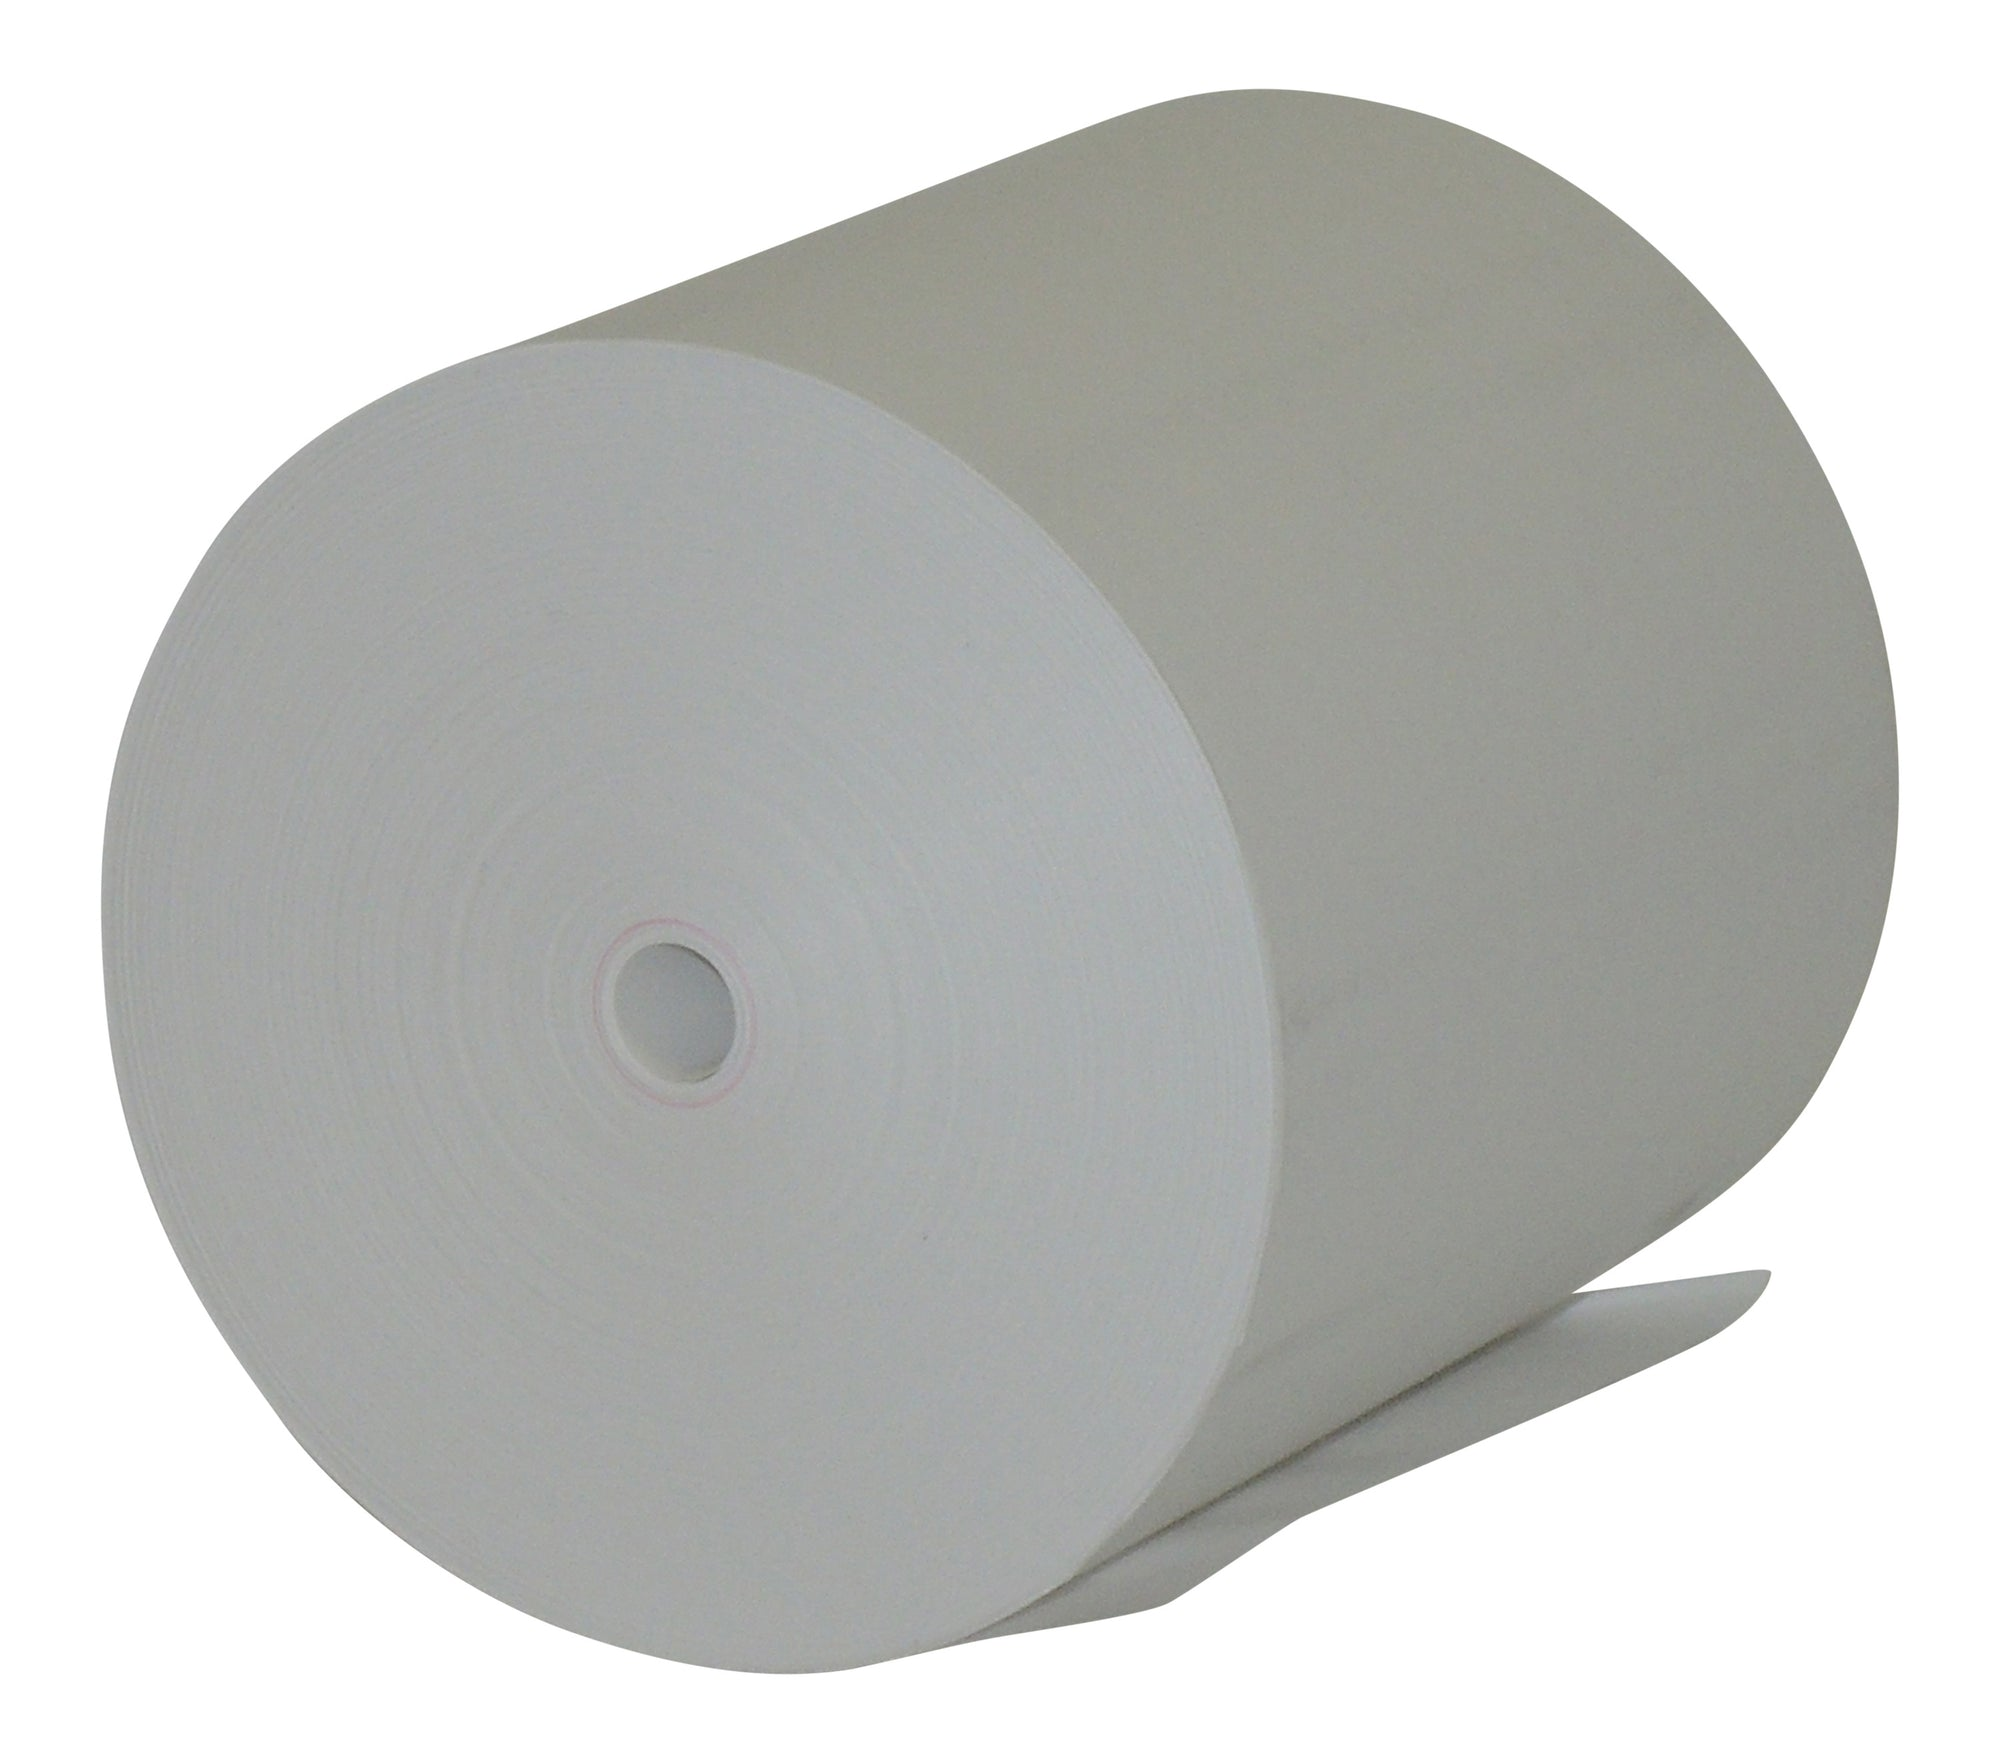 POS1 1 Ply Bond Roll 3 x 225 ft CORELESS Bright White